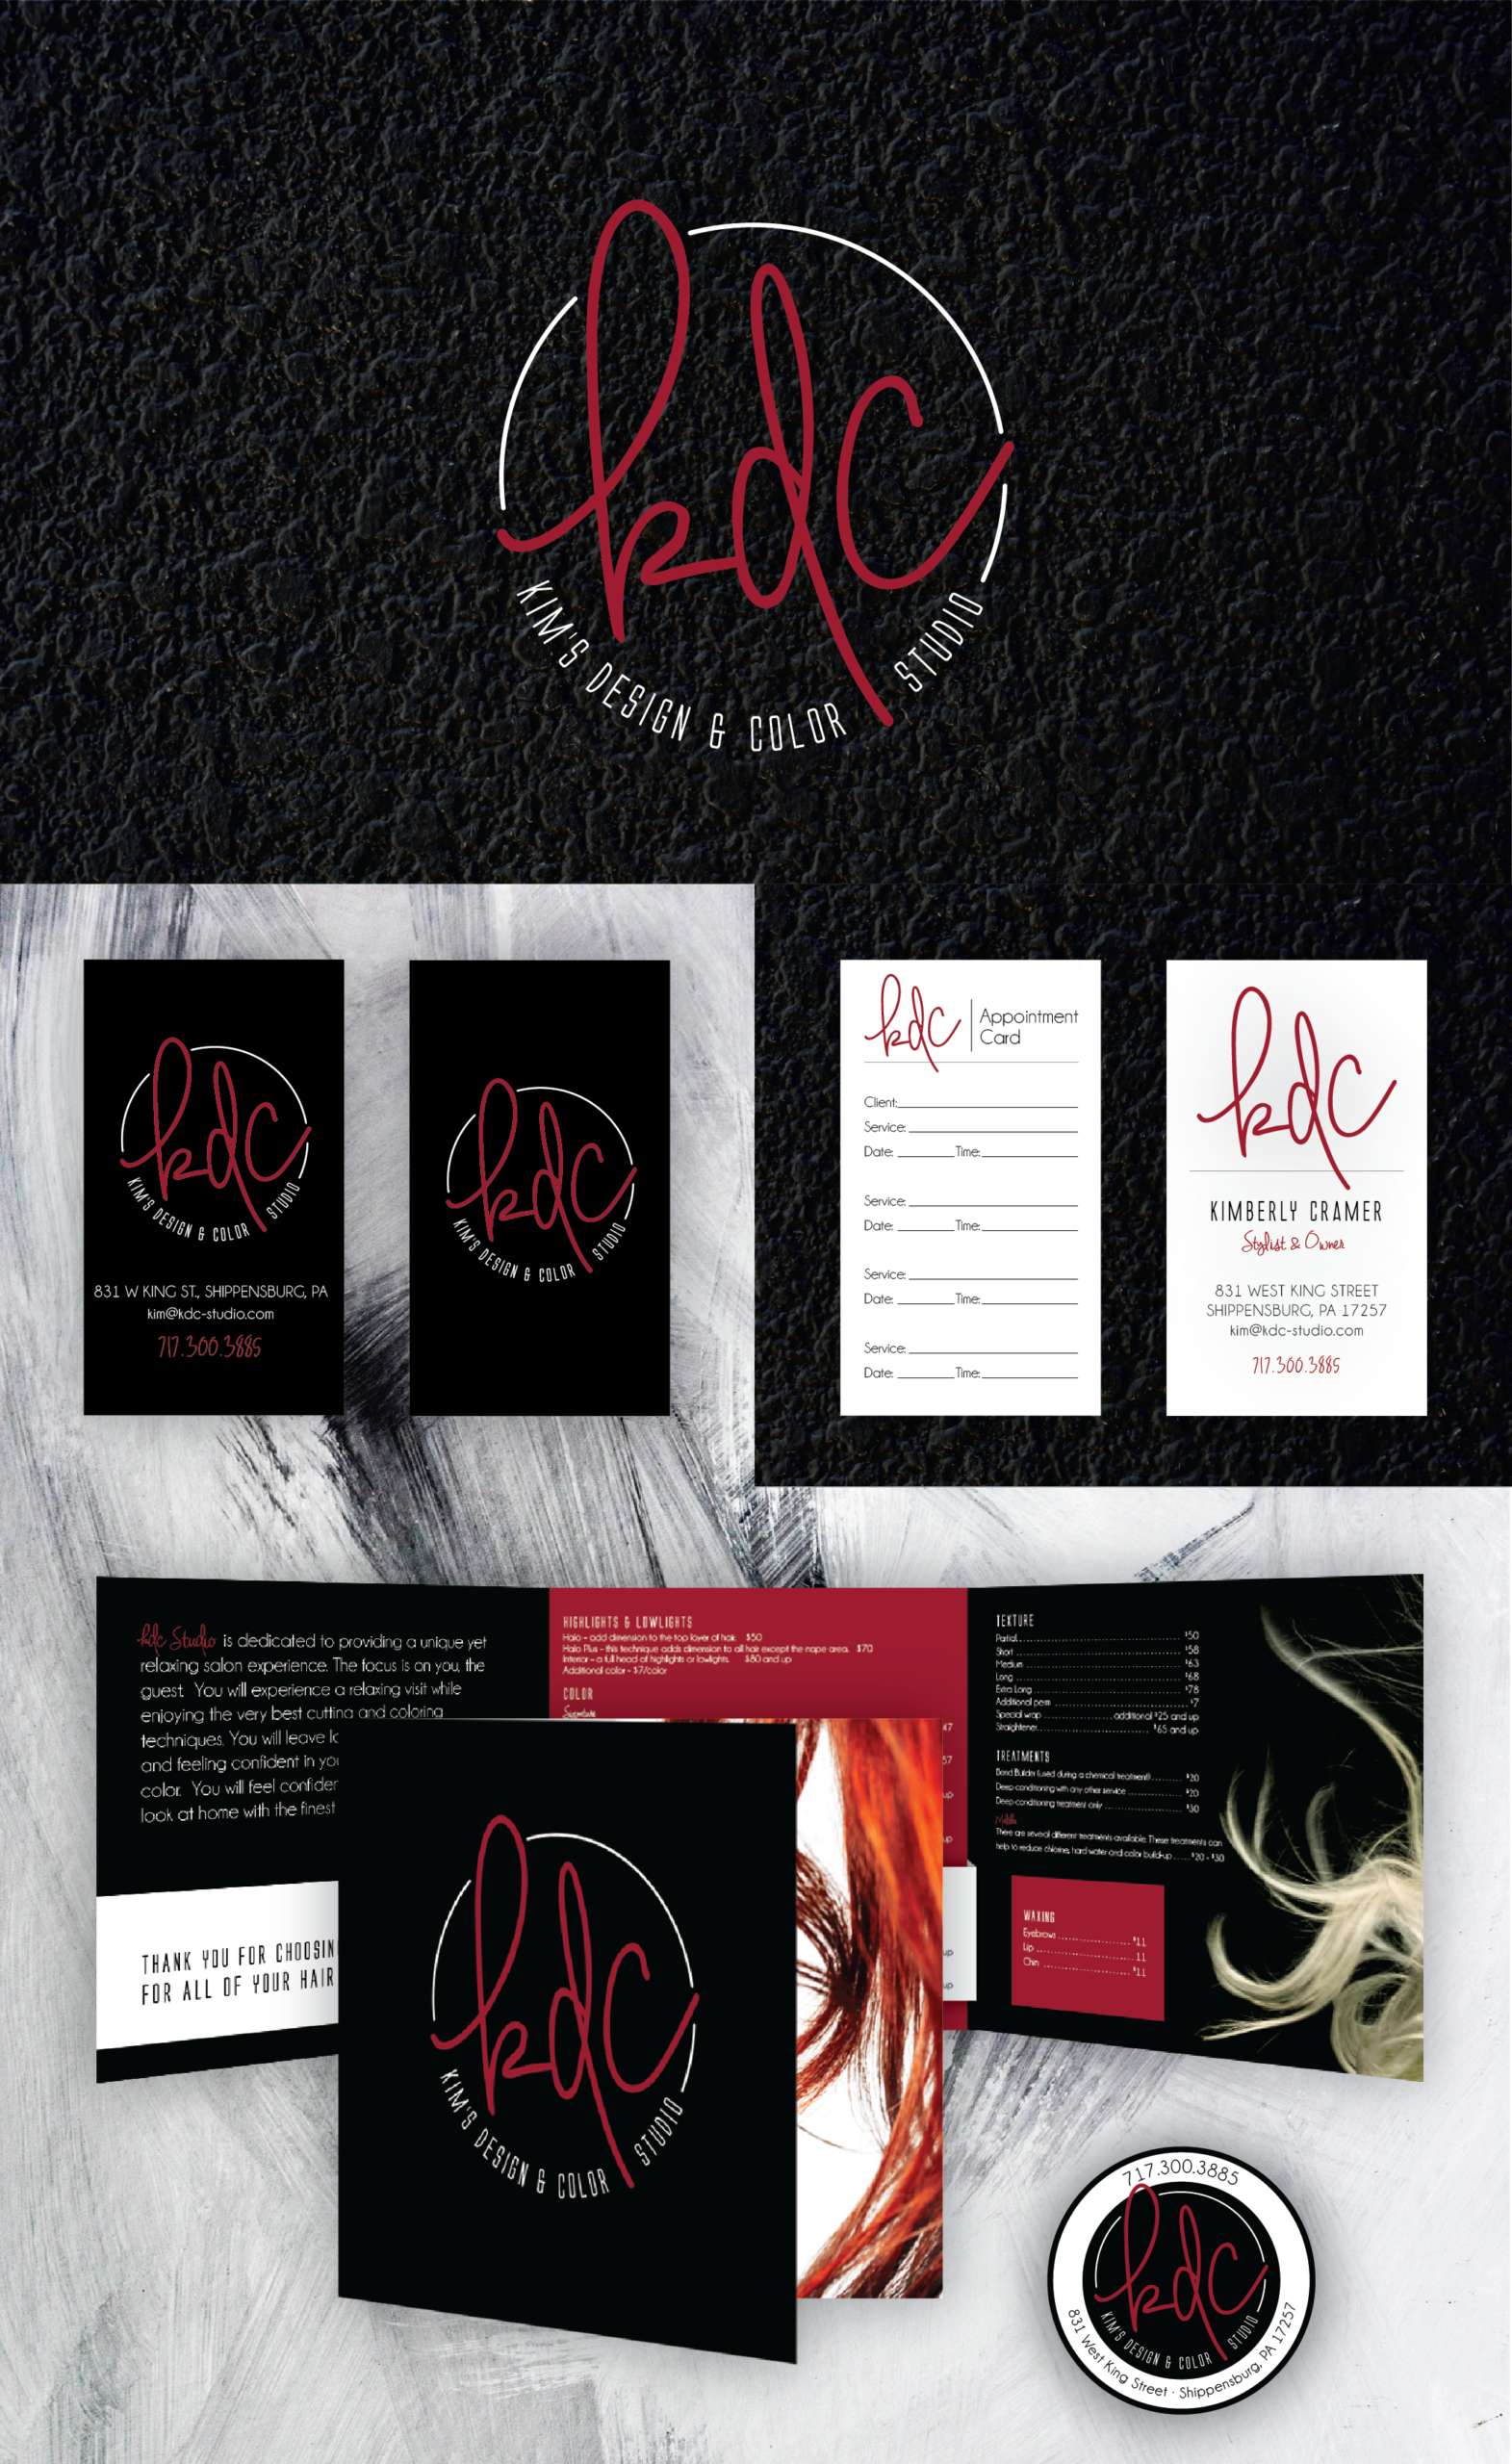 Kim's Design & Color Studio Portfolio